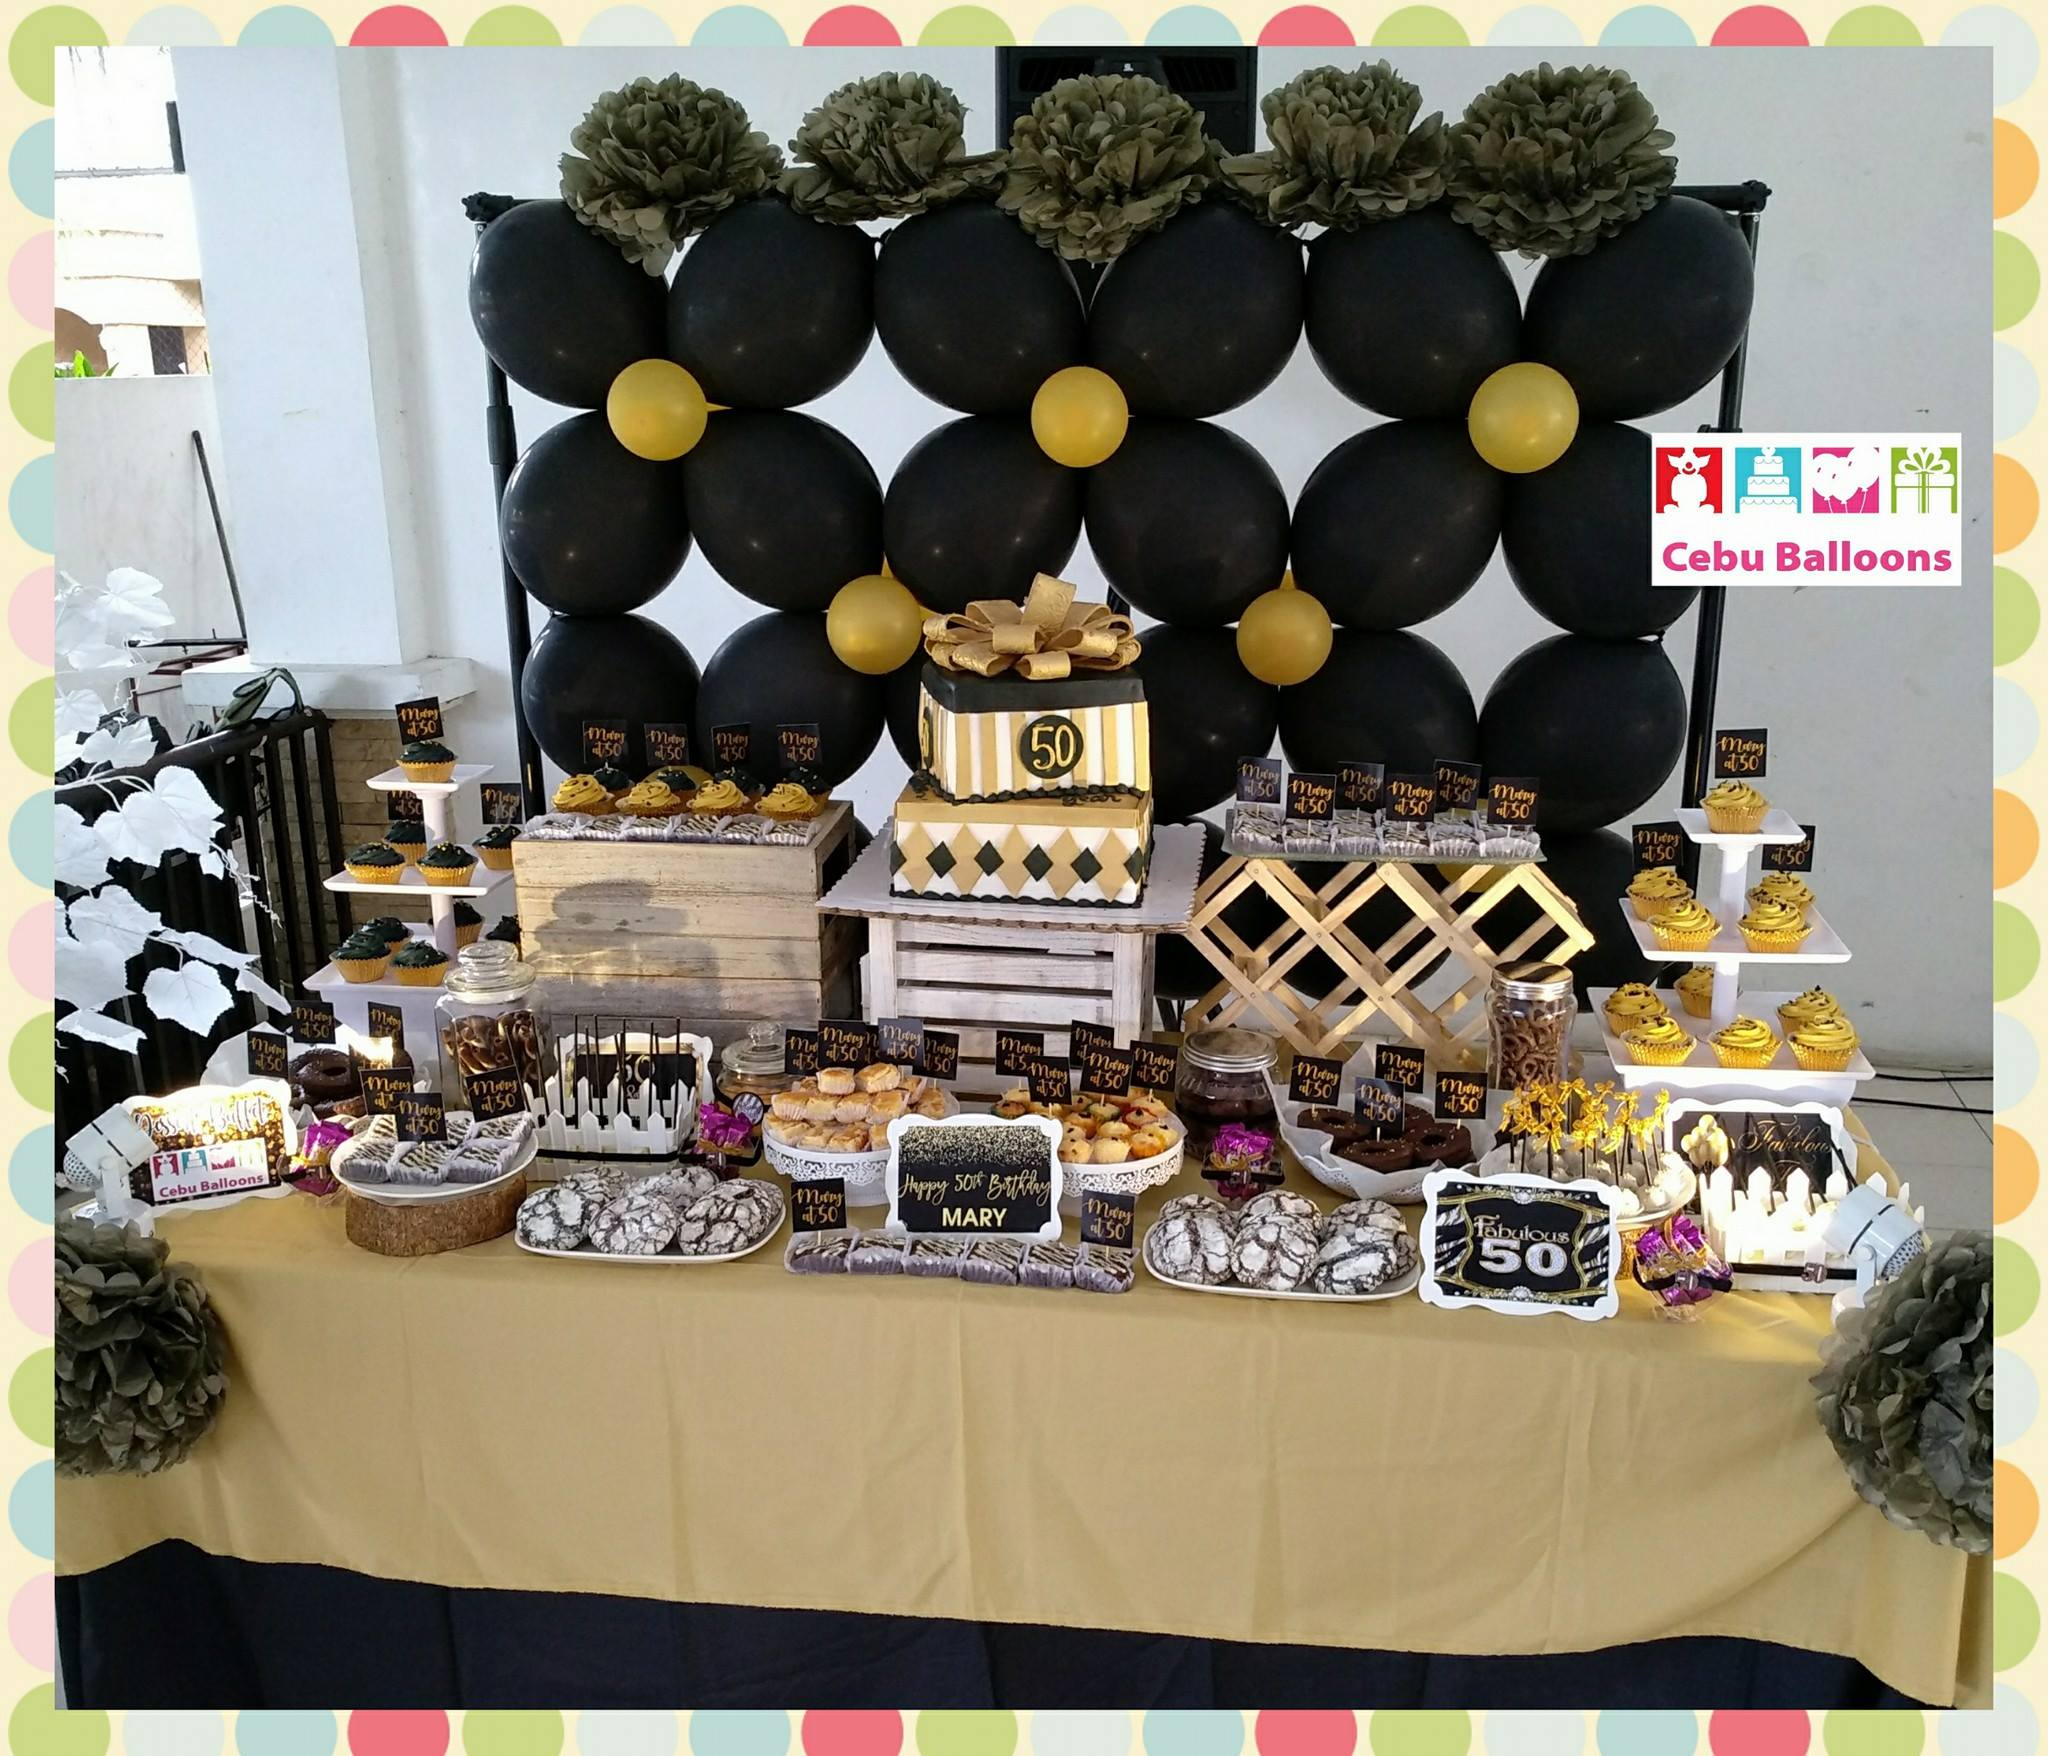 Elegant Black And Gold Themed Dessert Buffet For Marys 50th Birthday